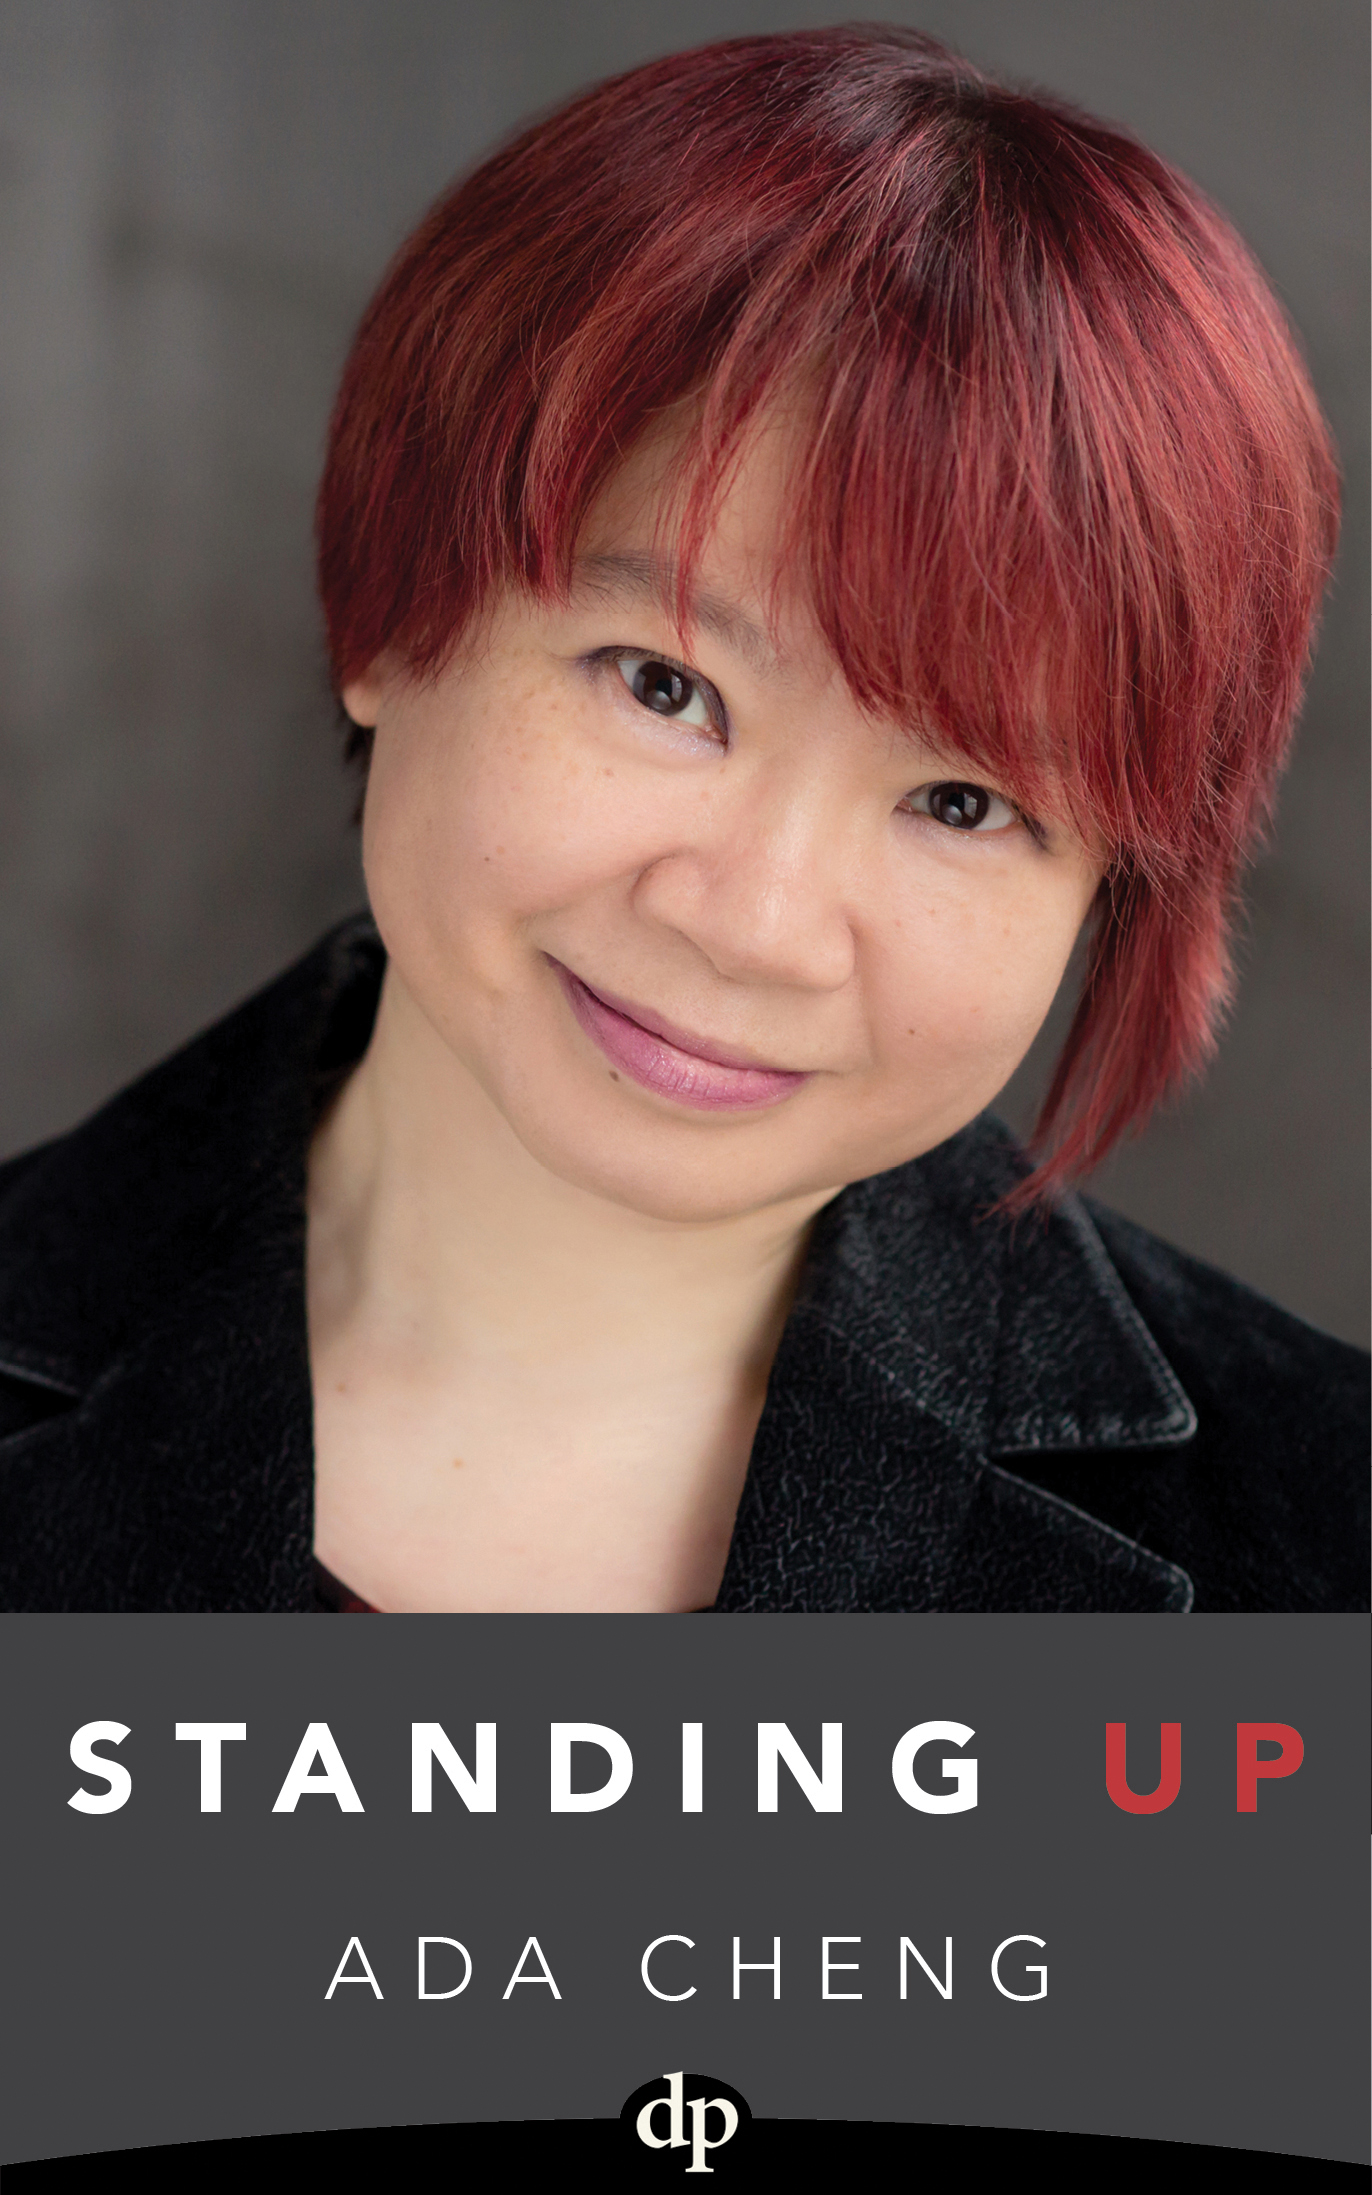 CHENG_Standing Up-ebk-Approved.jpg